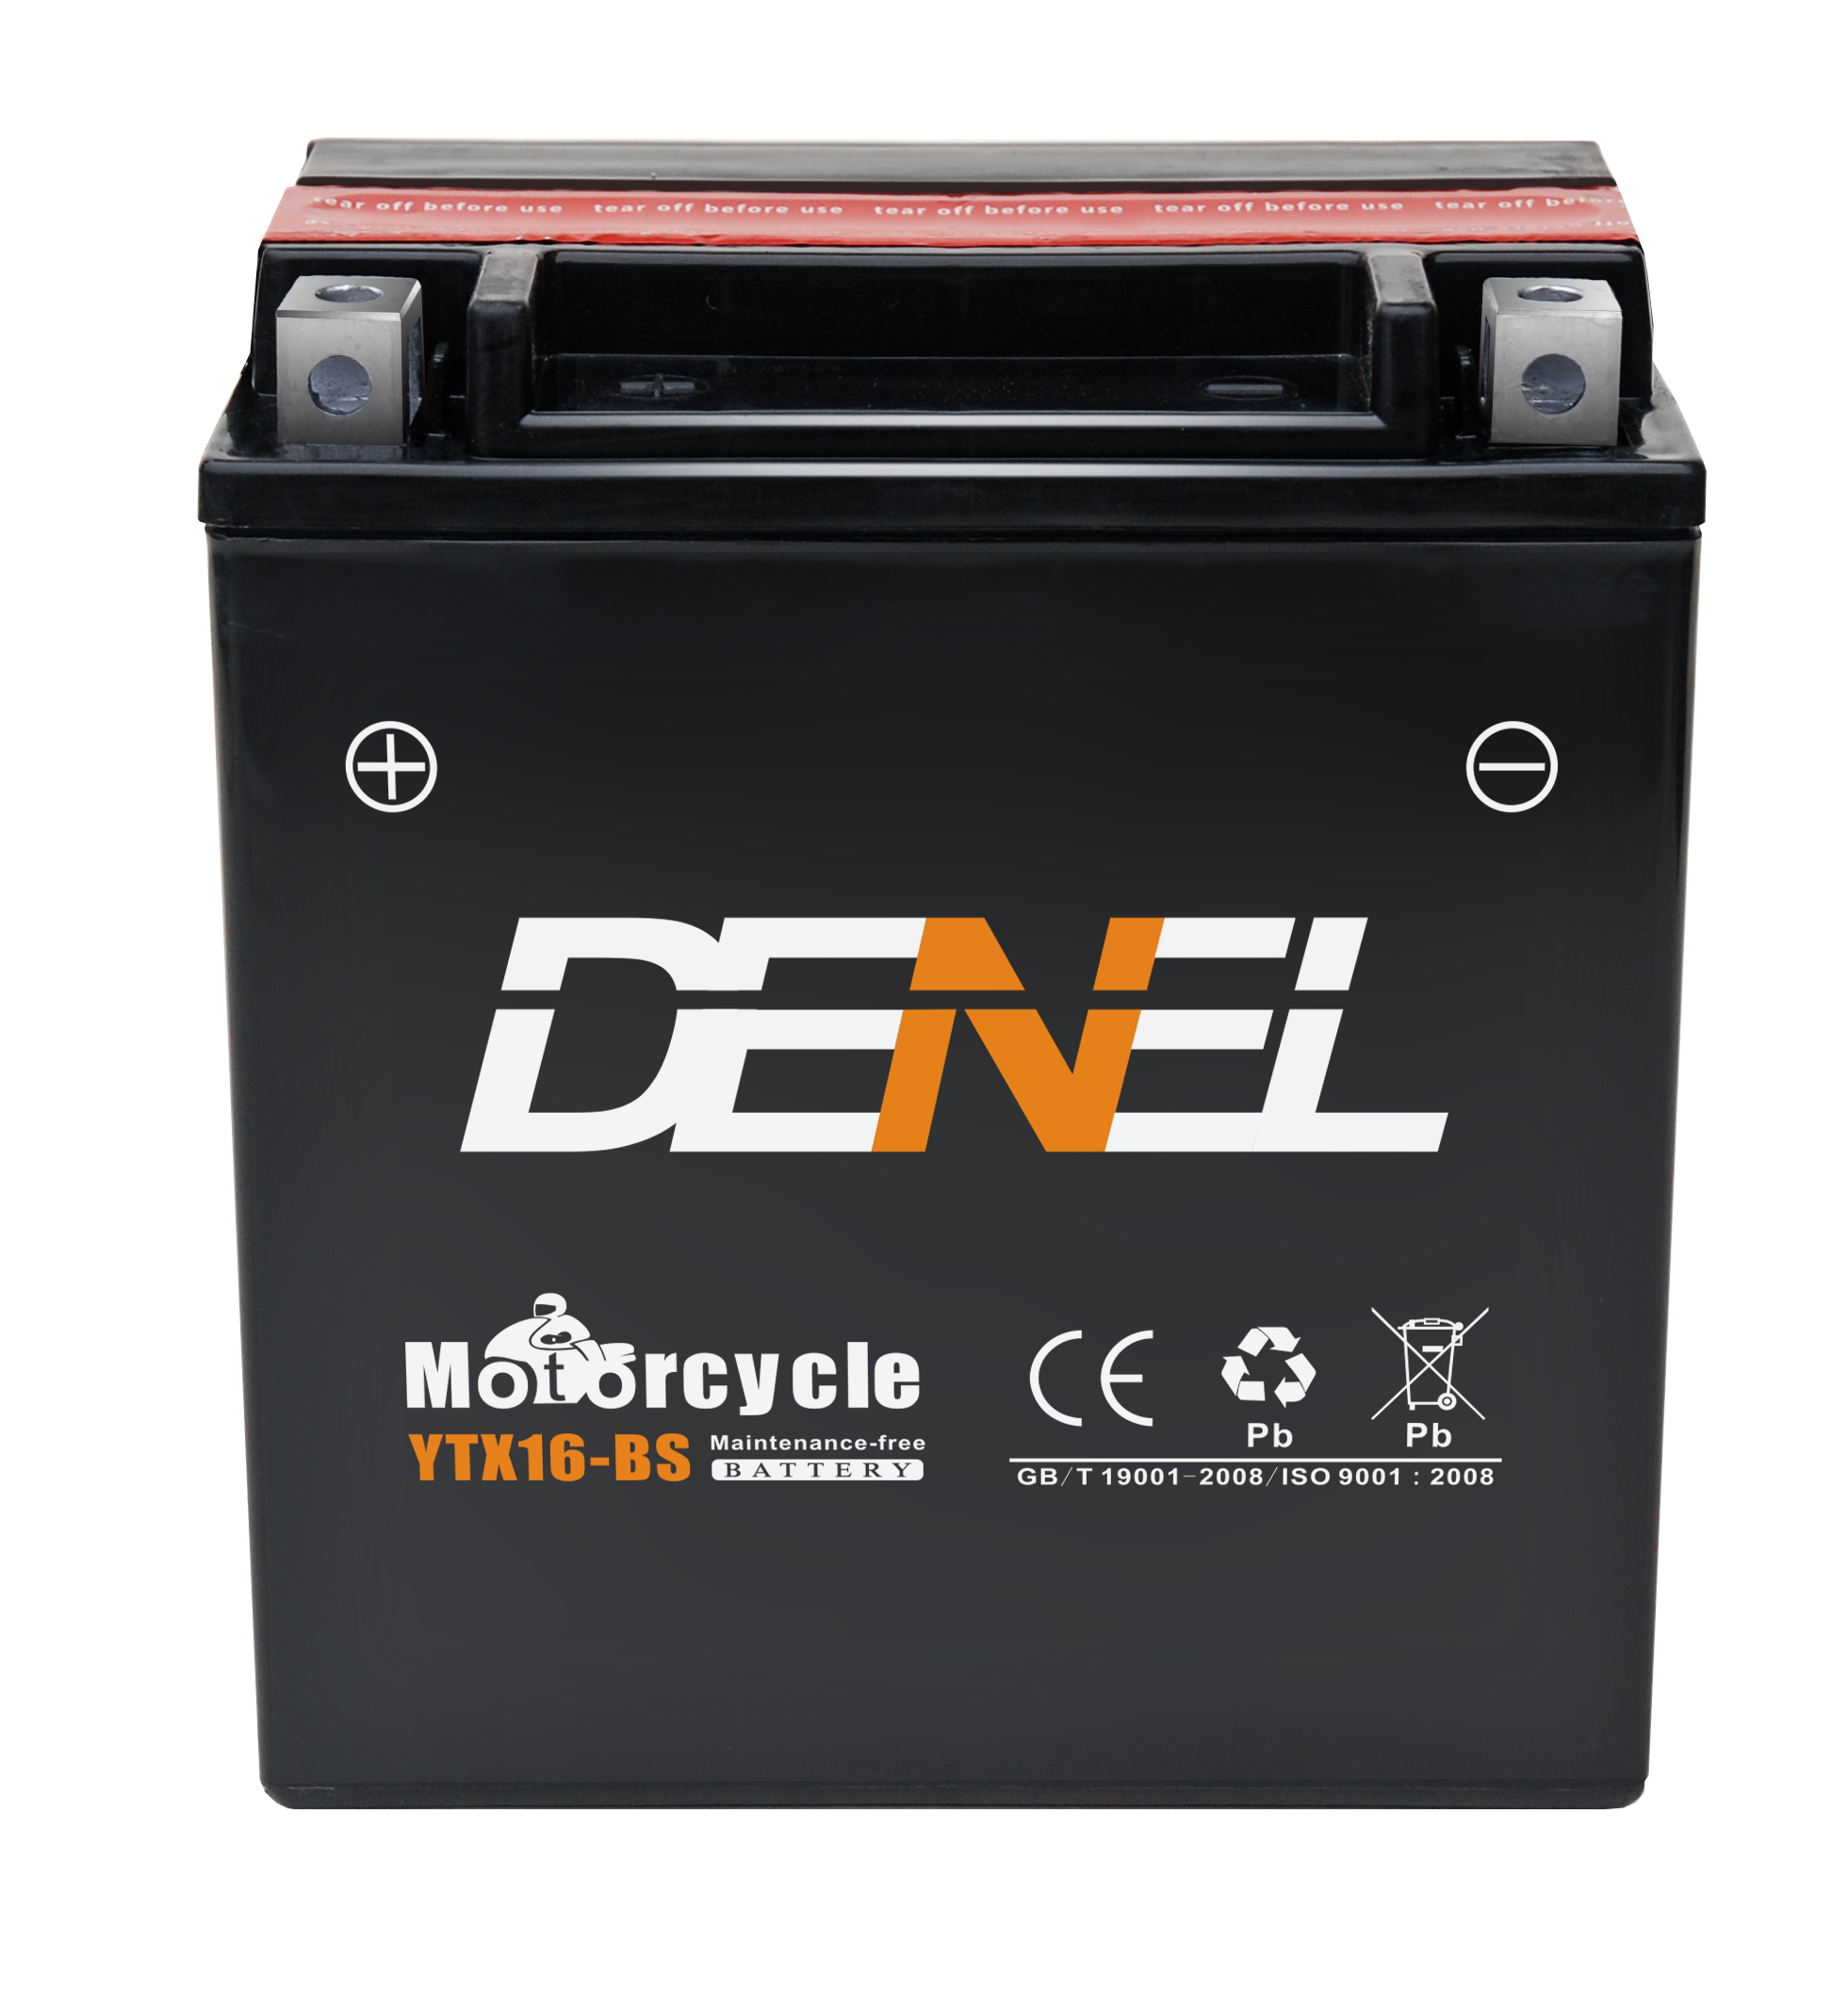 YTX16-BS electric motorcycle battery pack 12v 14ah battery for motorcycle